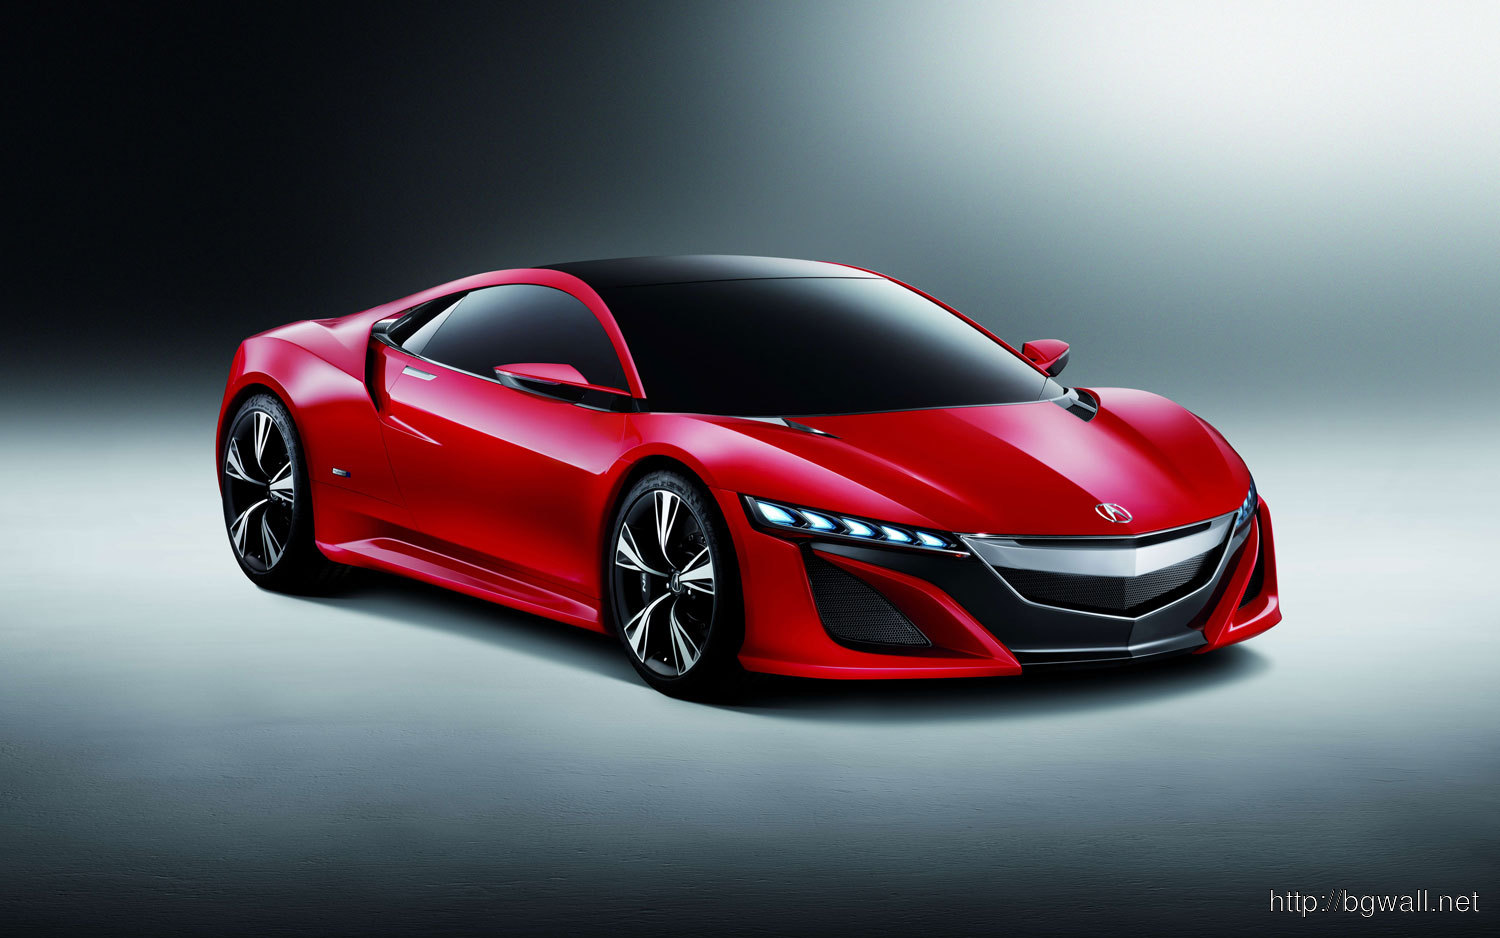 Acura-NSX-Concept-HD-Wallpaper